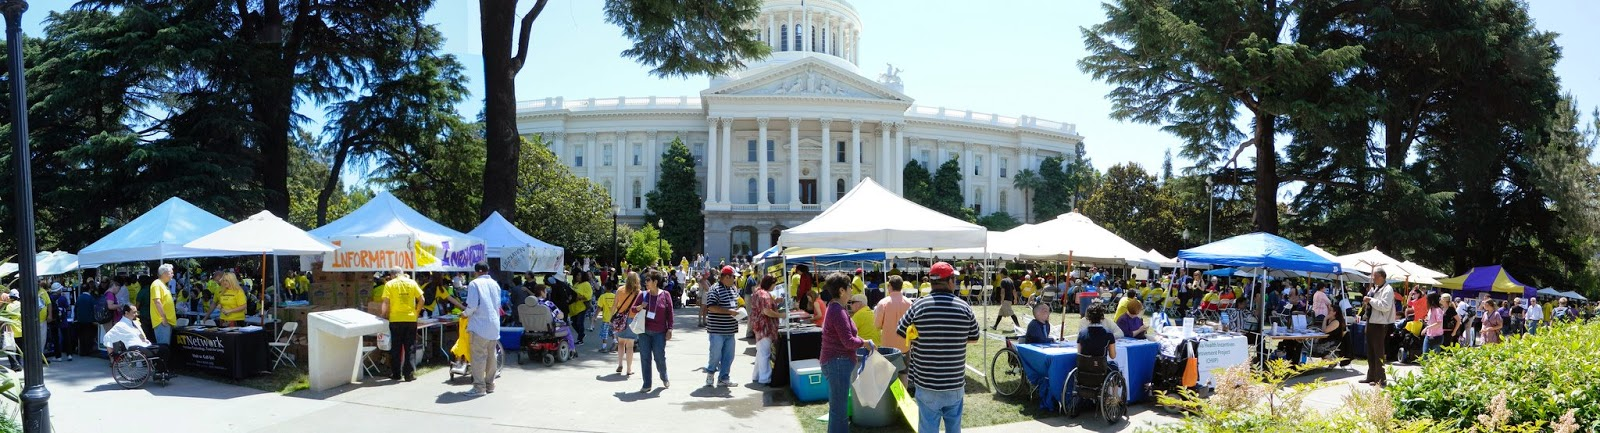 picture of the capitol with a dozen resource booths with tents and lots of people milling around them